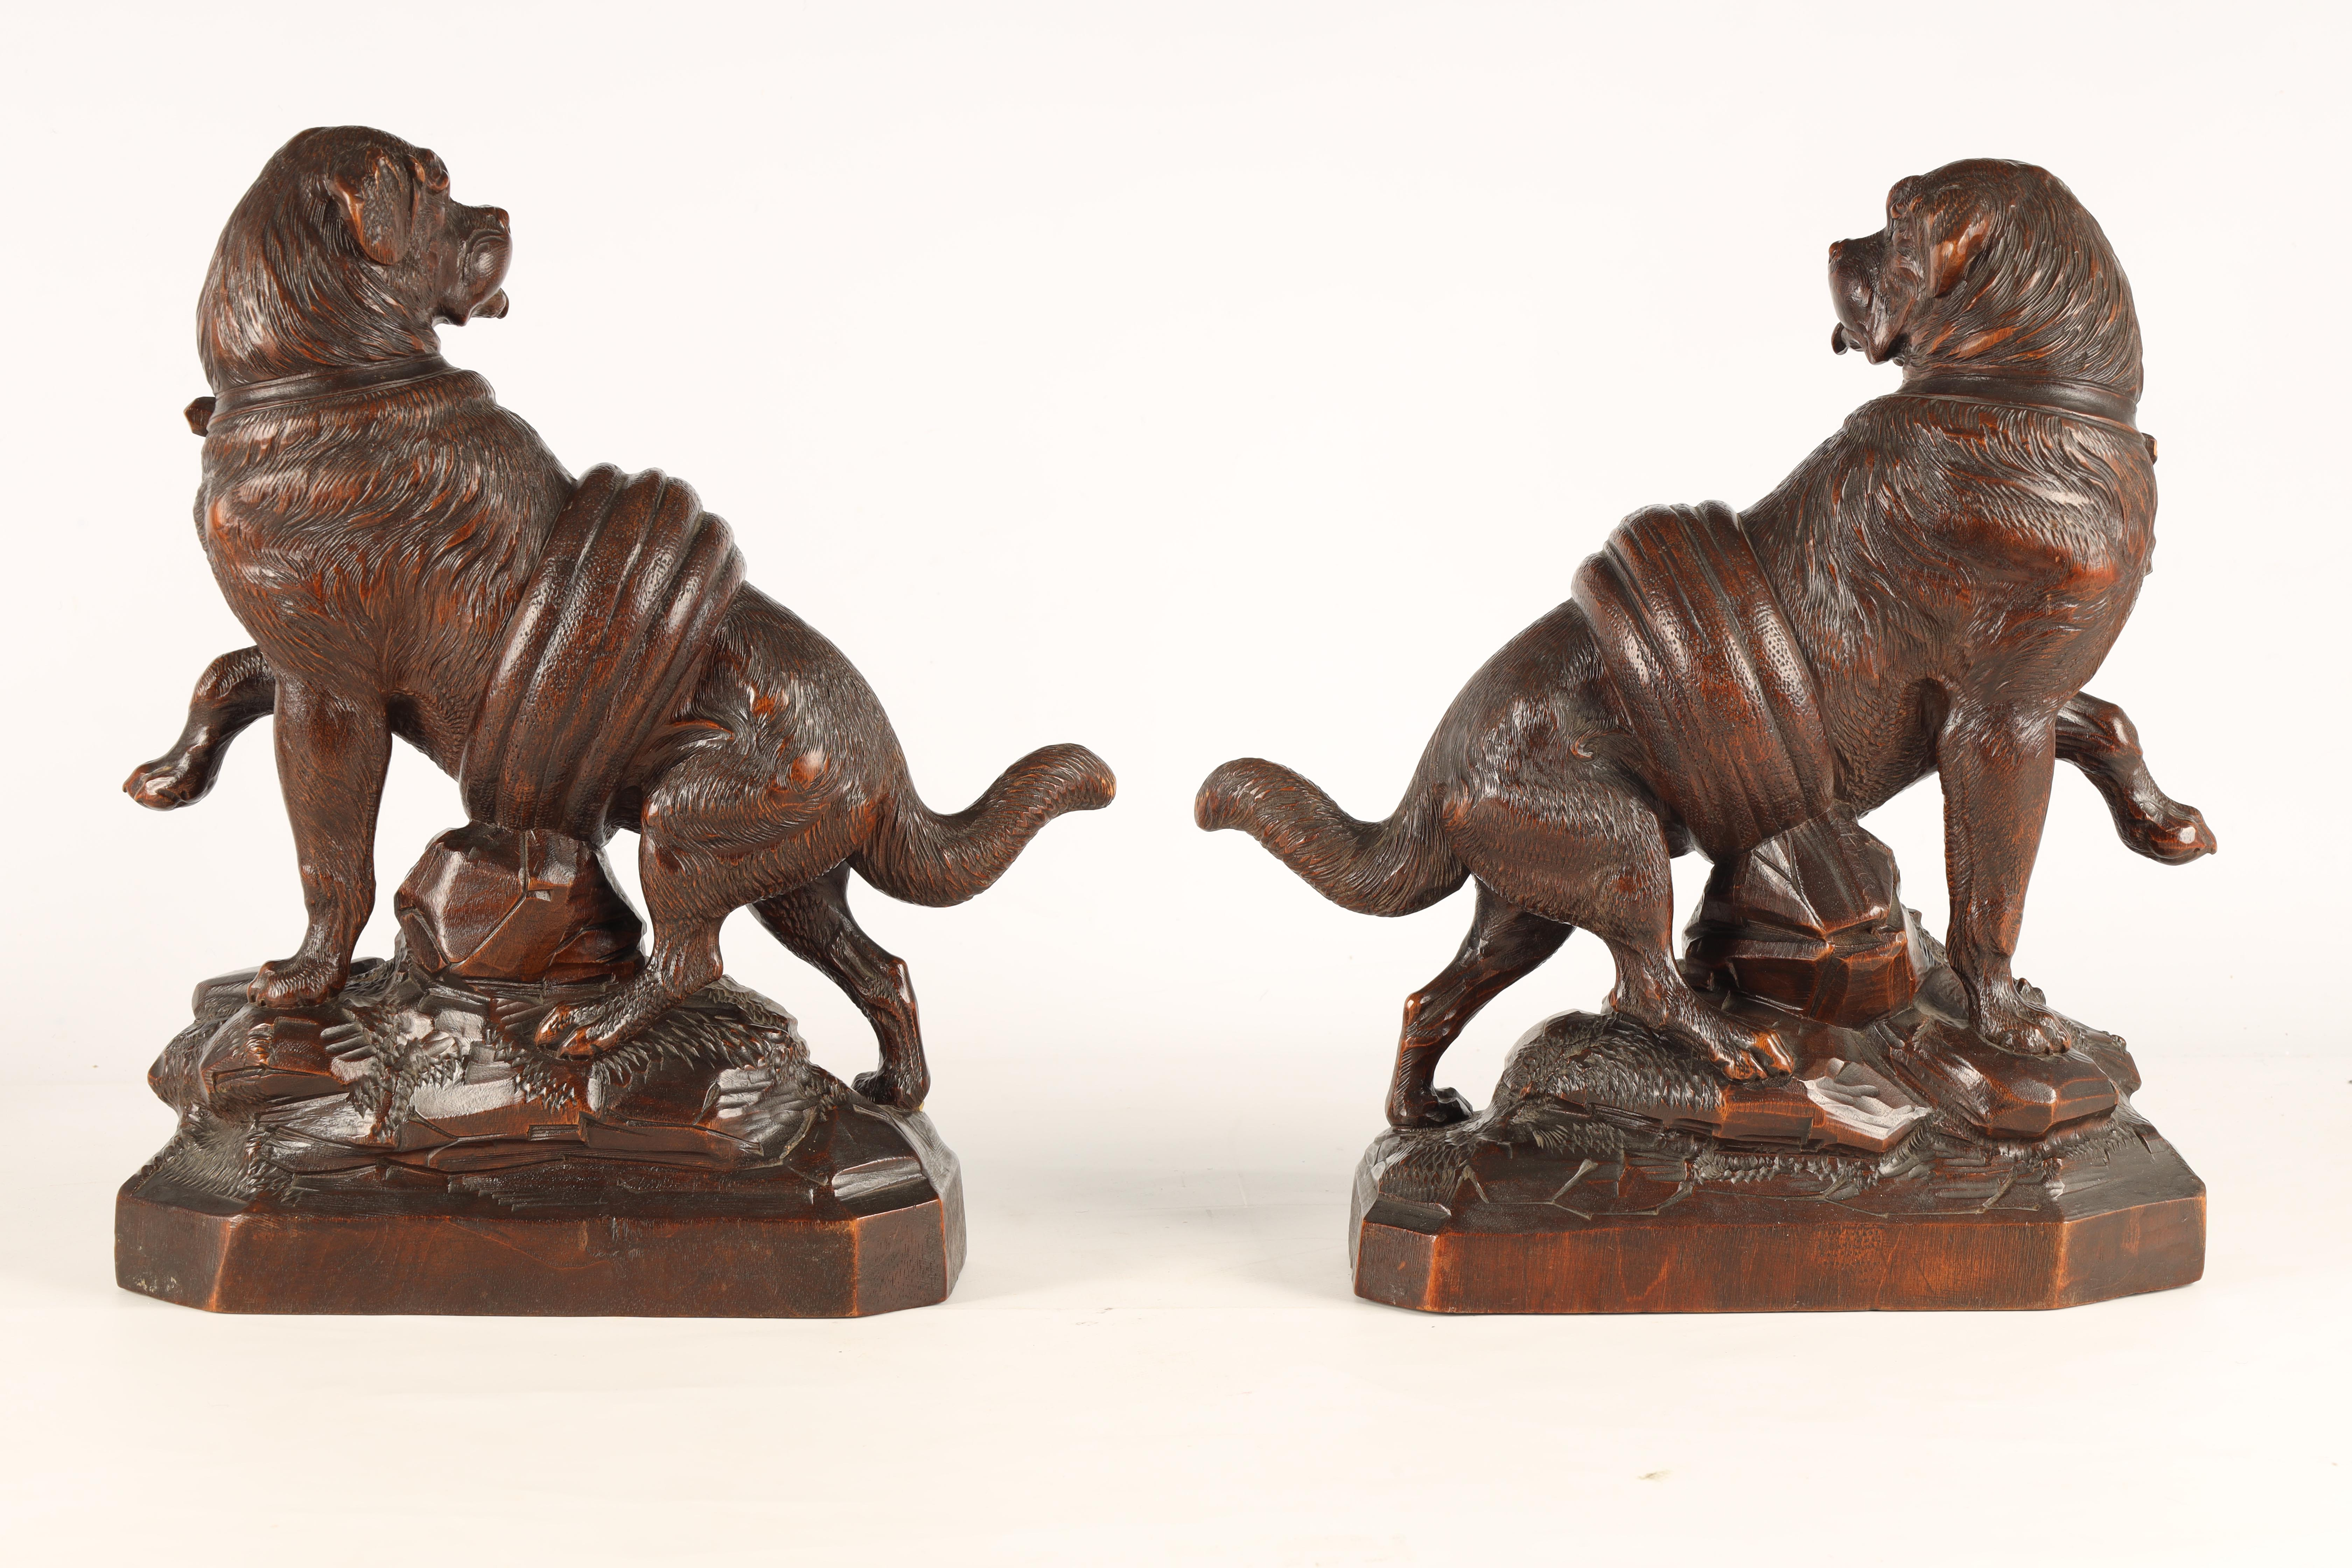 A GOOD QUALITY PAIR OF LATE 19TH CENTURY BLACK FOREST CARVED SCULPTURES modelled as Saint Bernards - Image 5 of 6